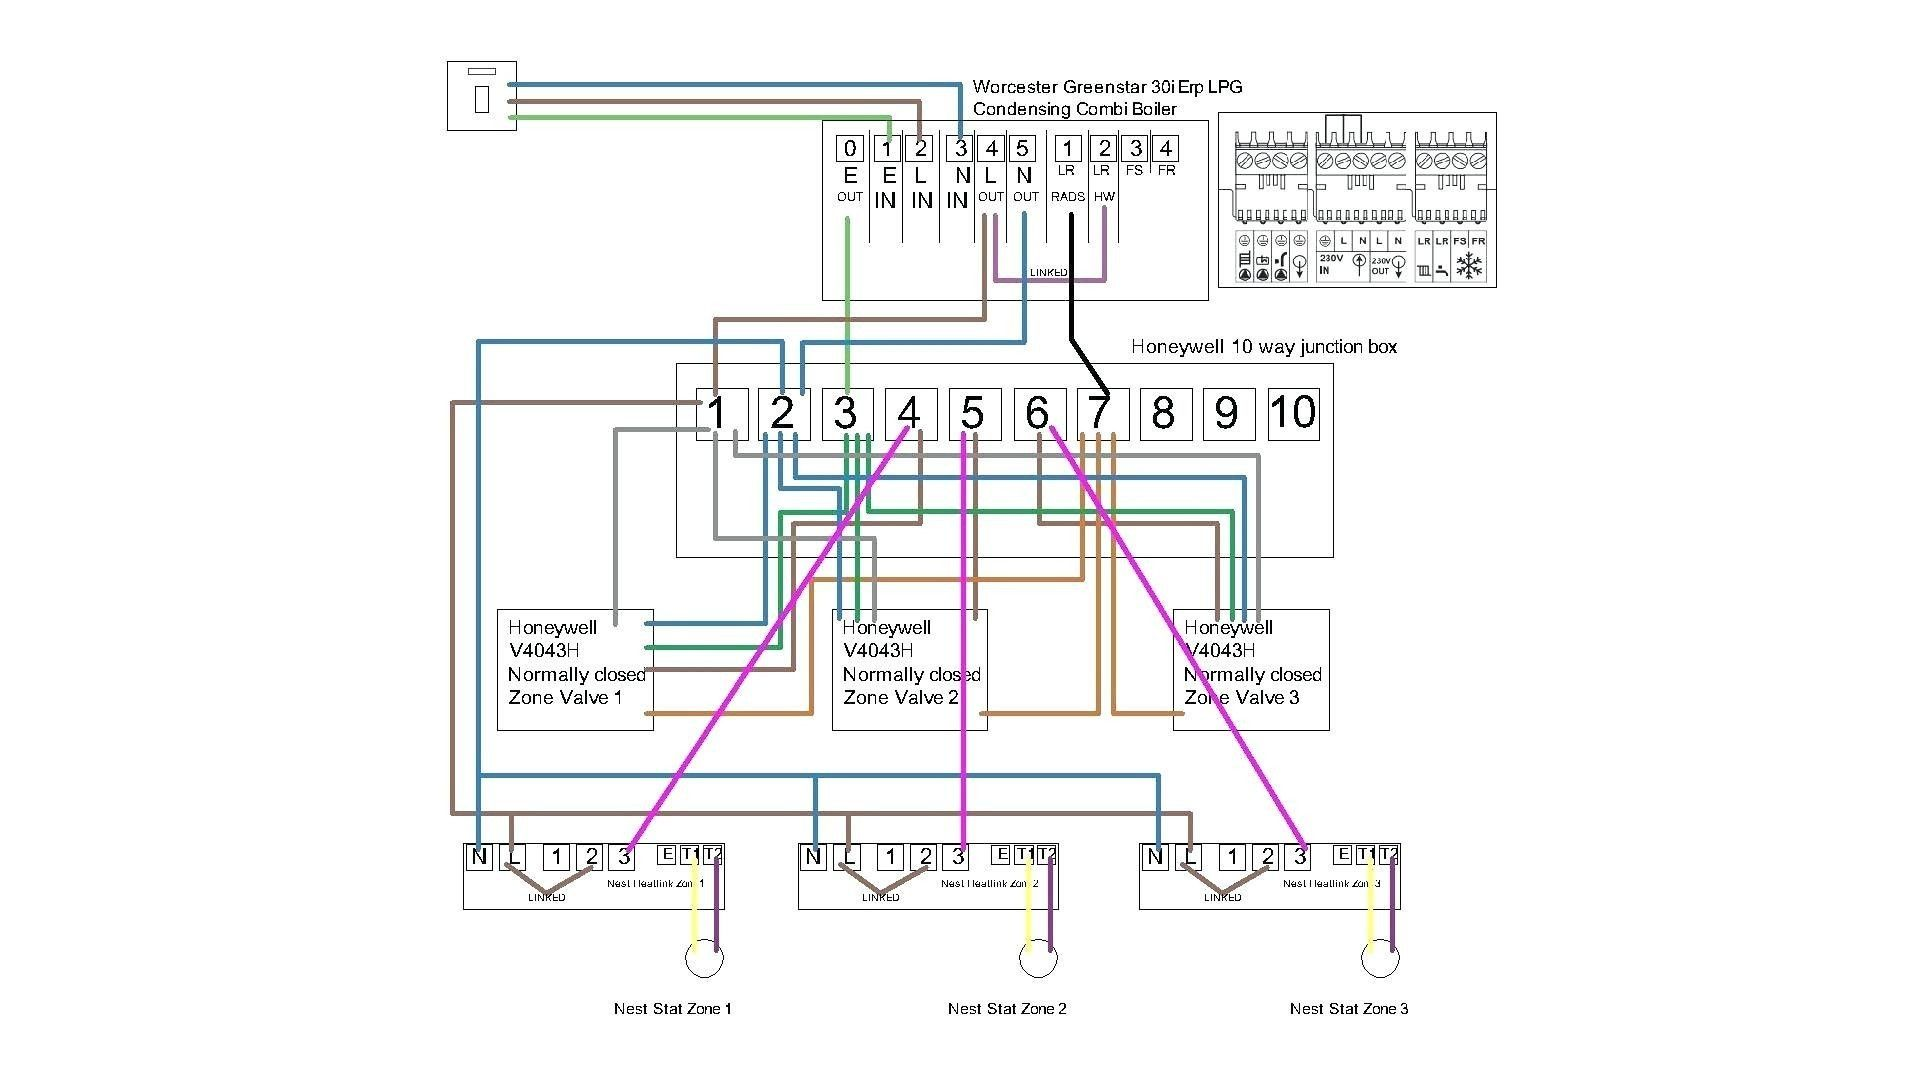 Unique Wiring Diagram For Honeywell Thermostat Rth2300b Diagram Diagramsample Diagramtemplate Check More At Https Worksheet Template Diagram Diagram Chart